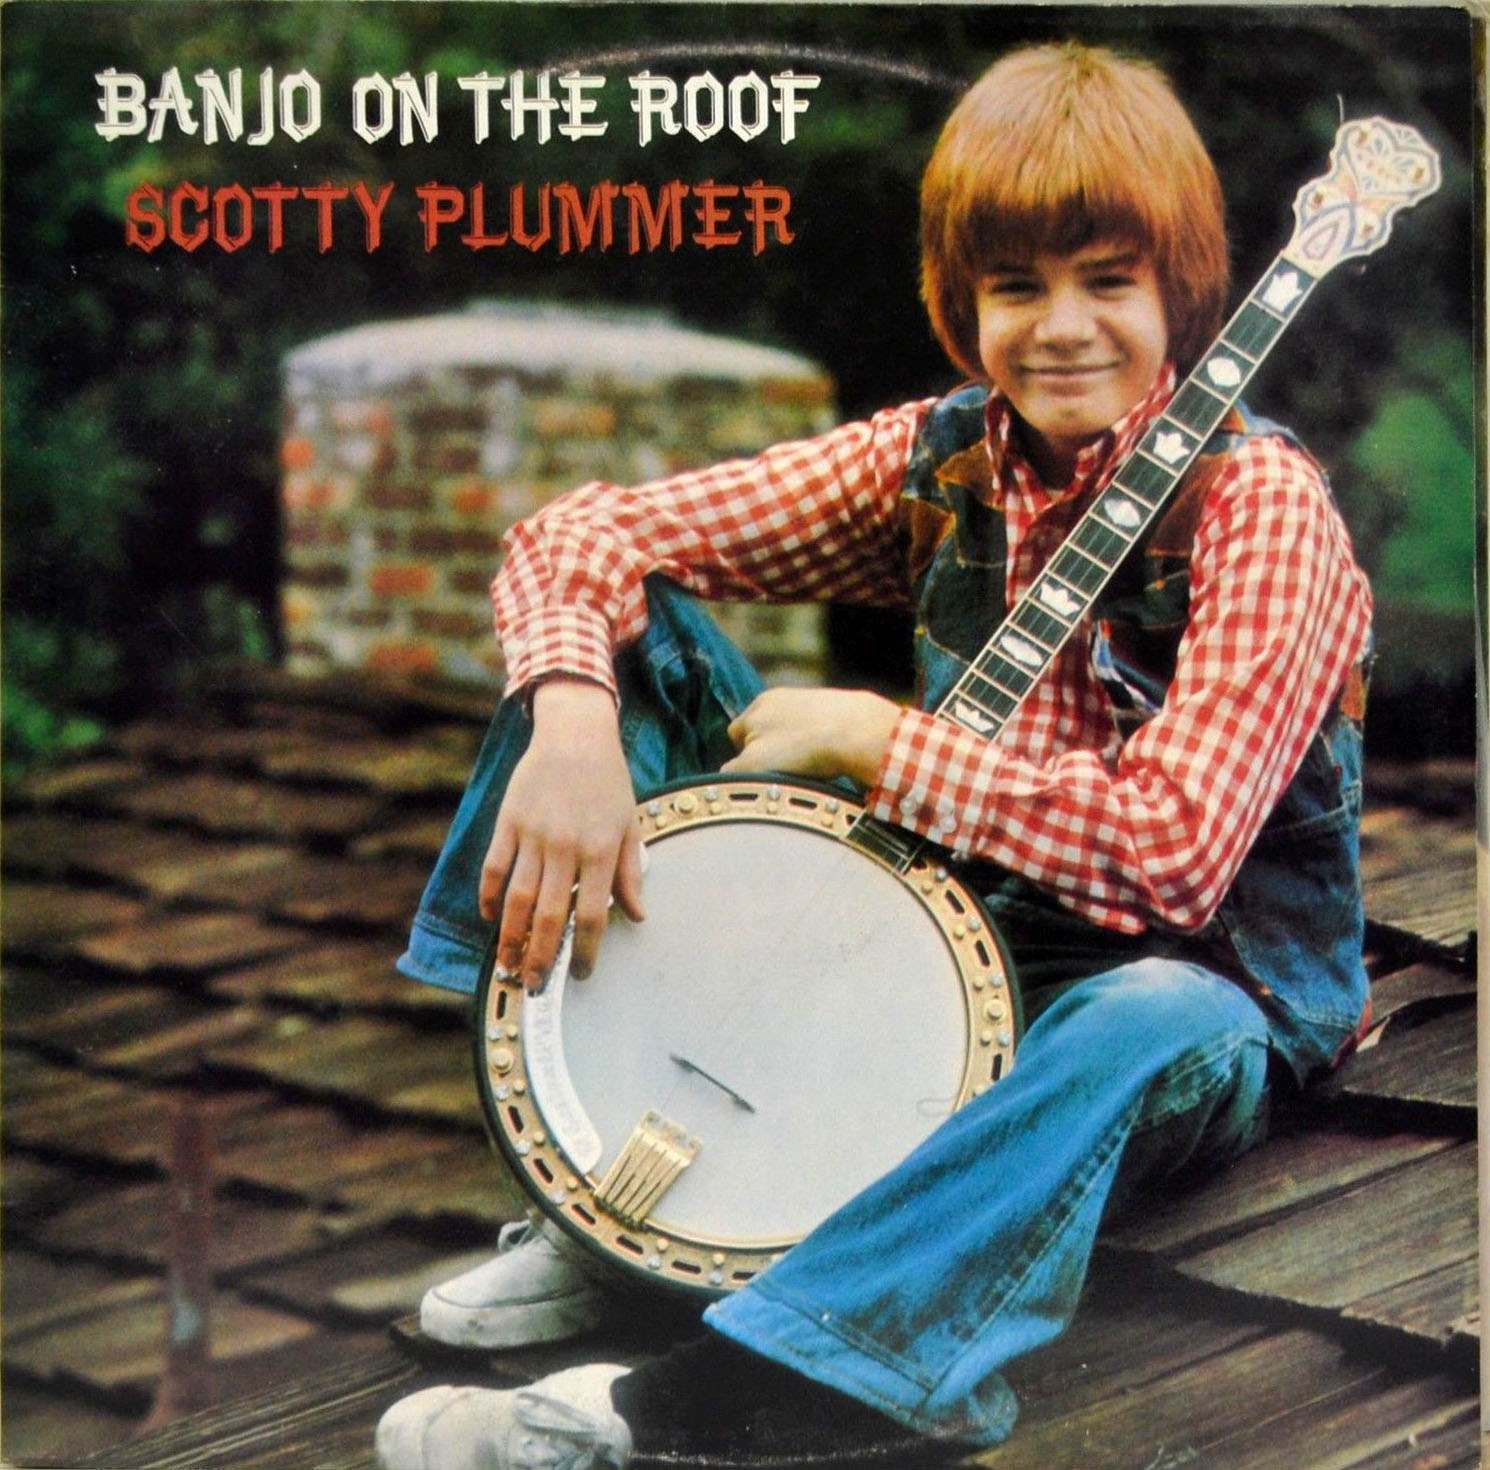 Scotty Plummer, Banjo On The Roof, 1975